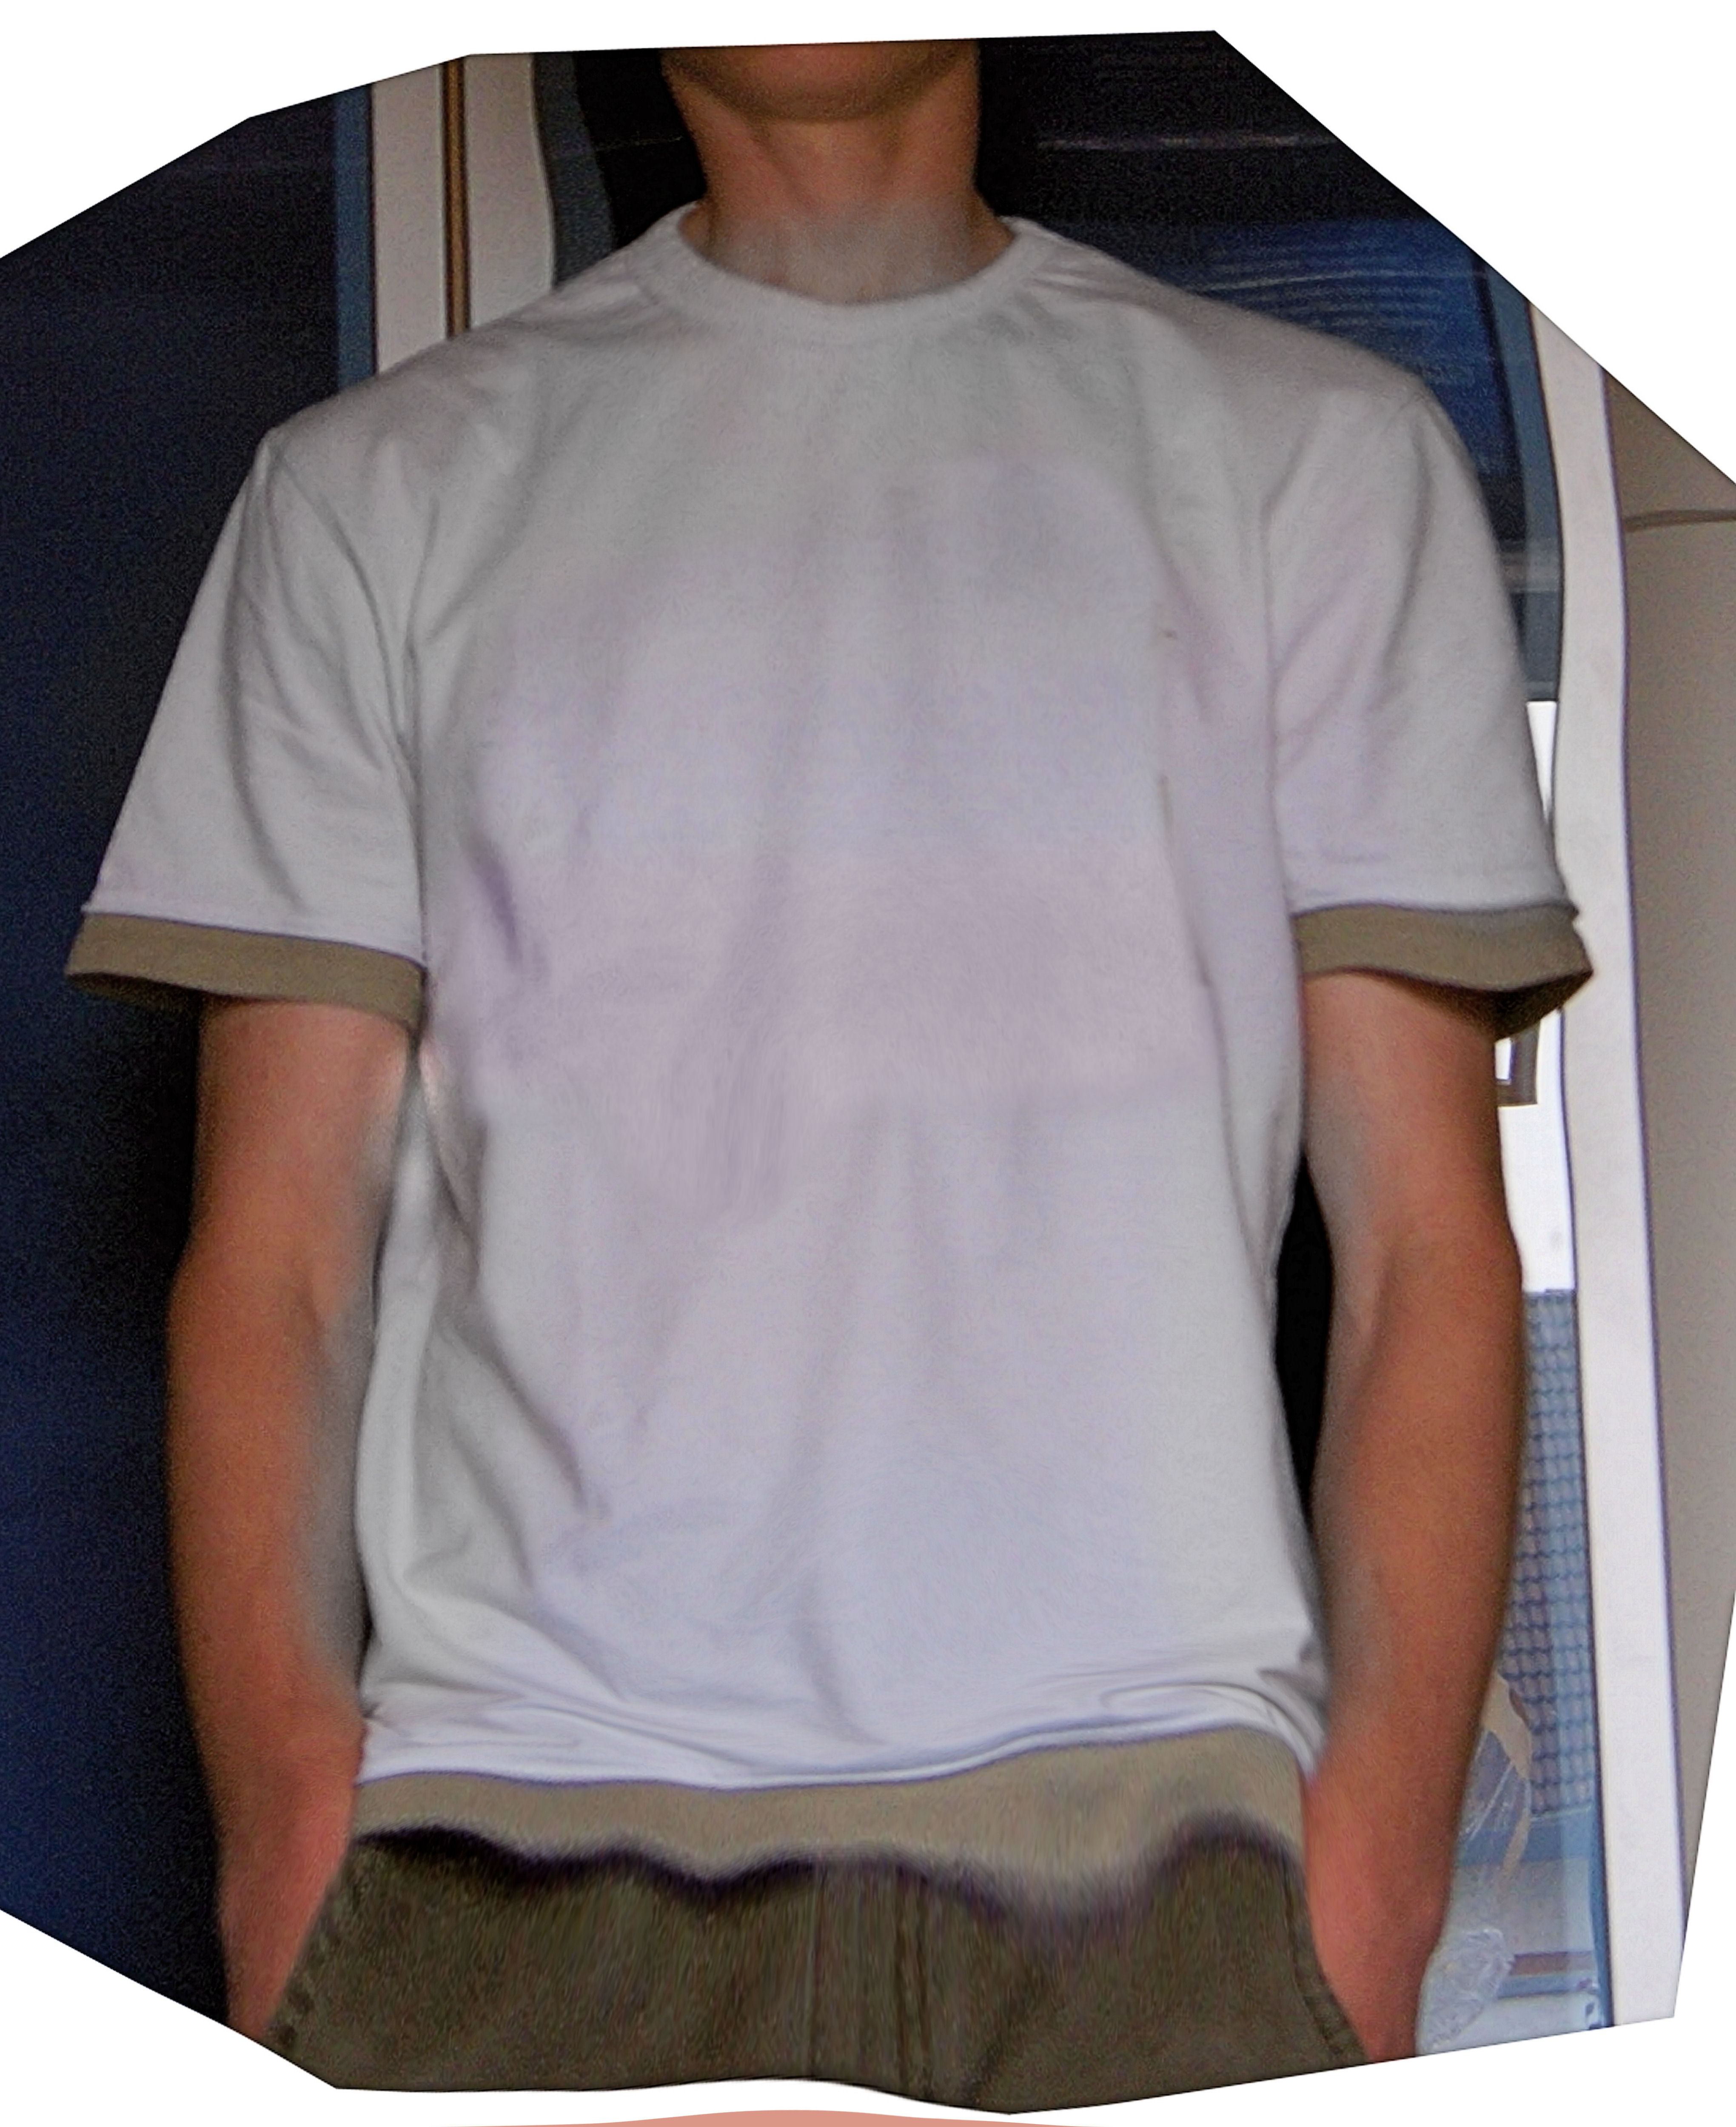 Picture of Modeling the Shirt